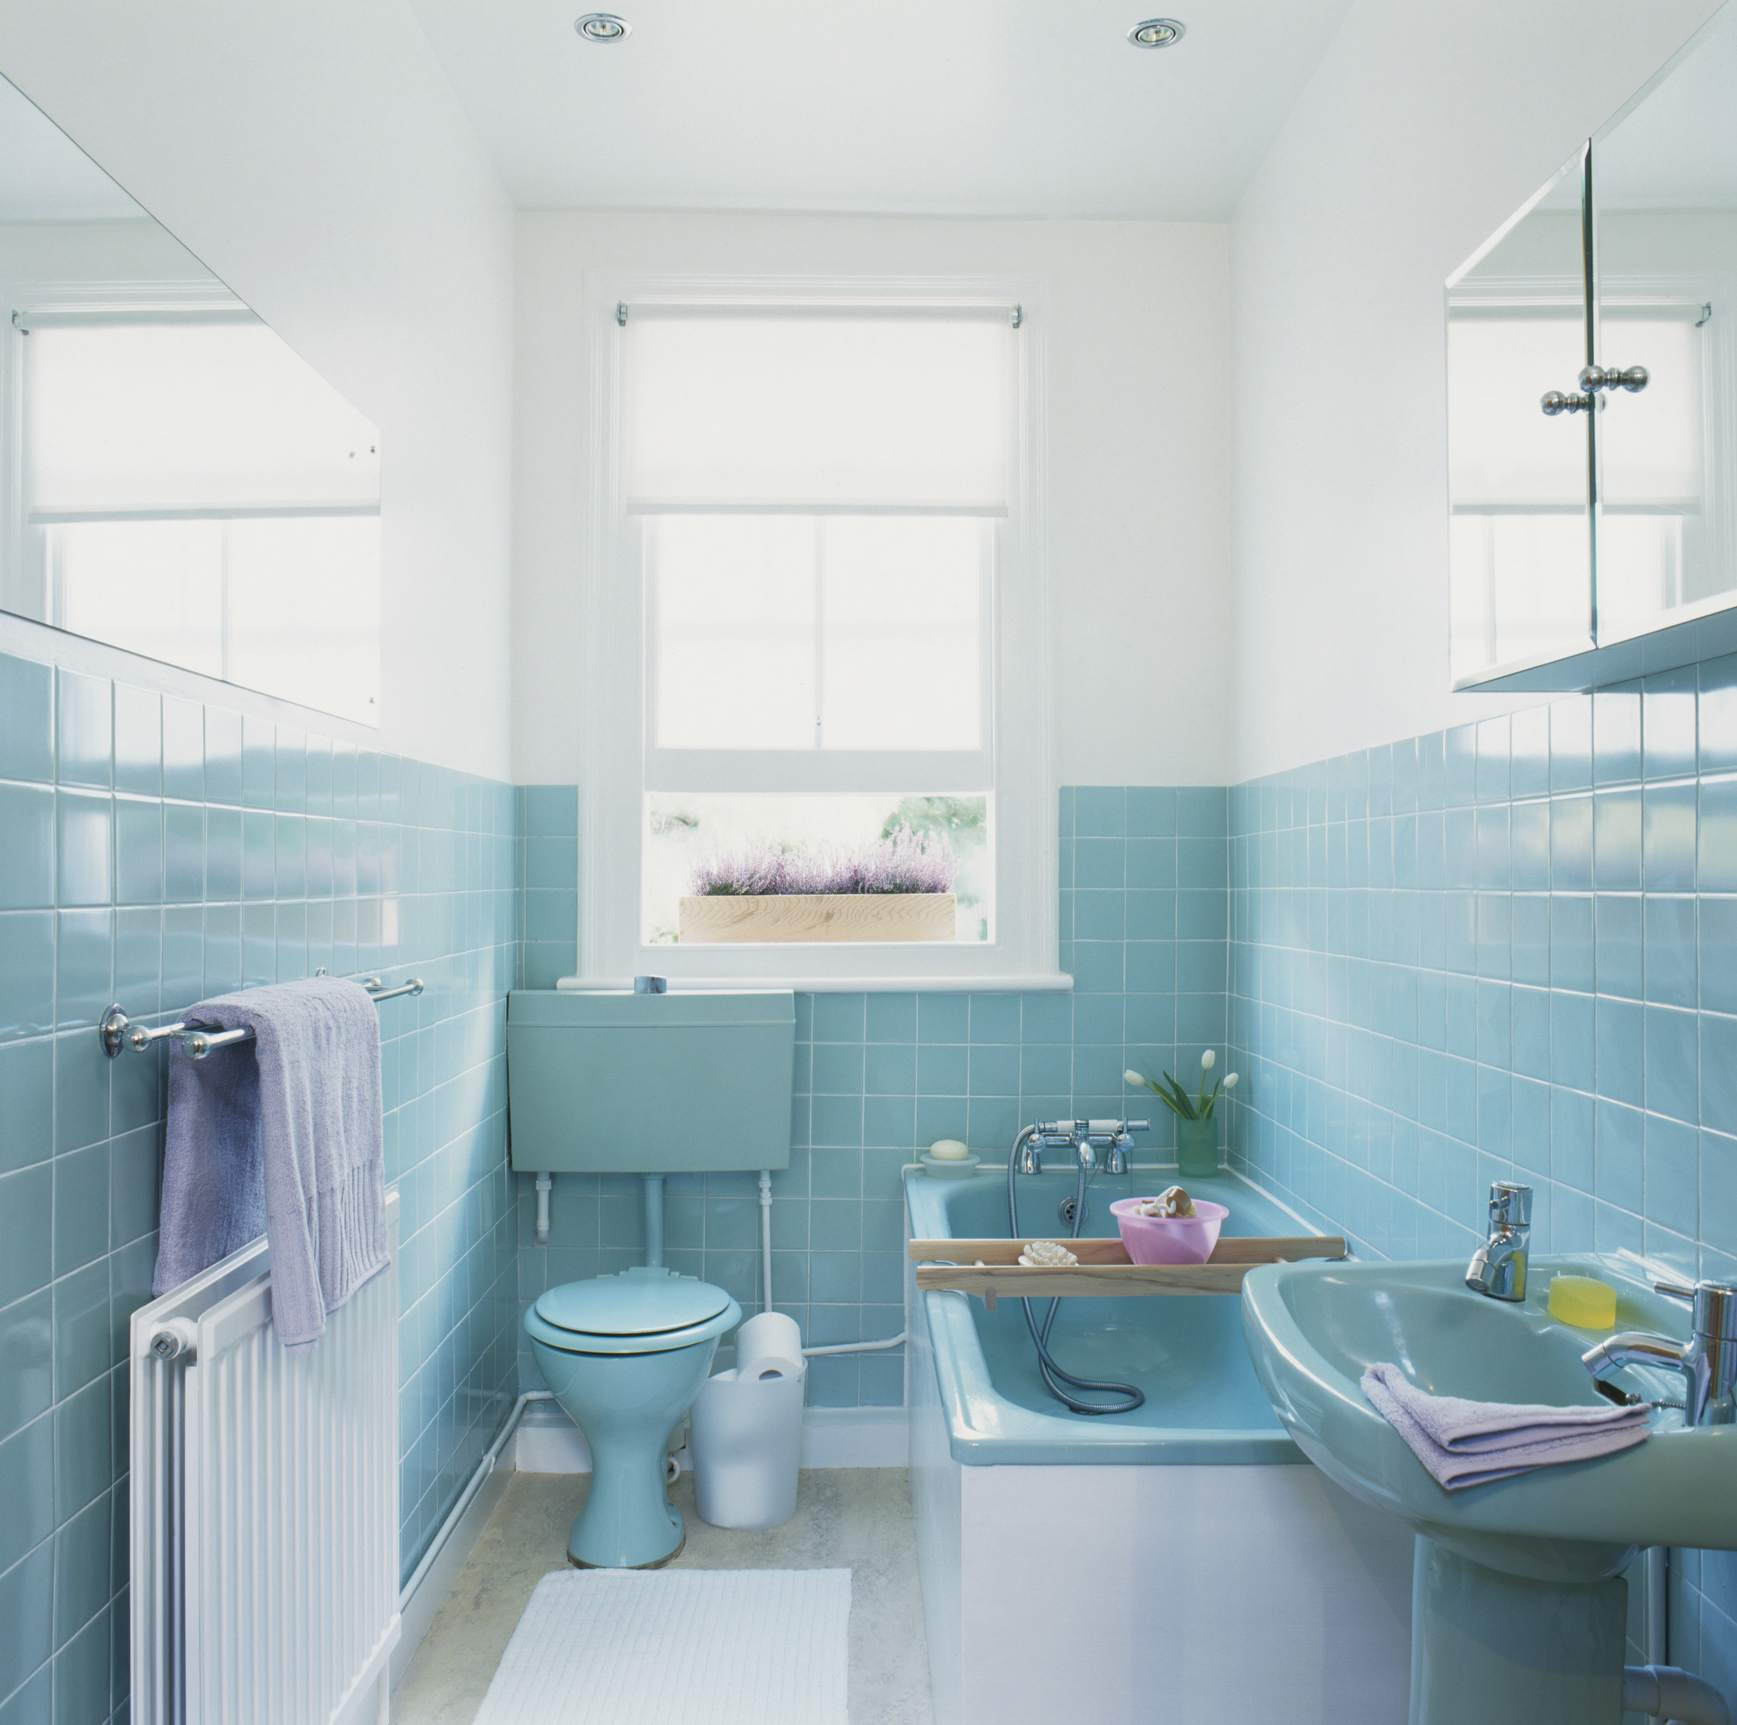 10 Expert Tips For Keeping A Bathroom Toasty Warm